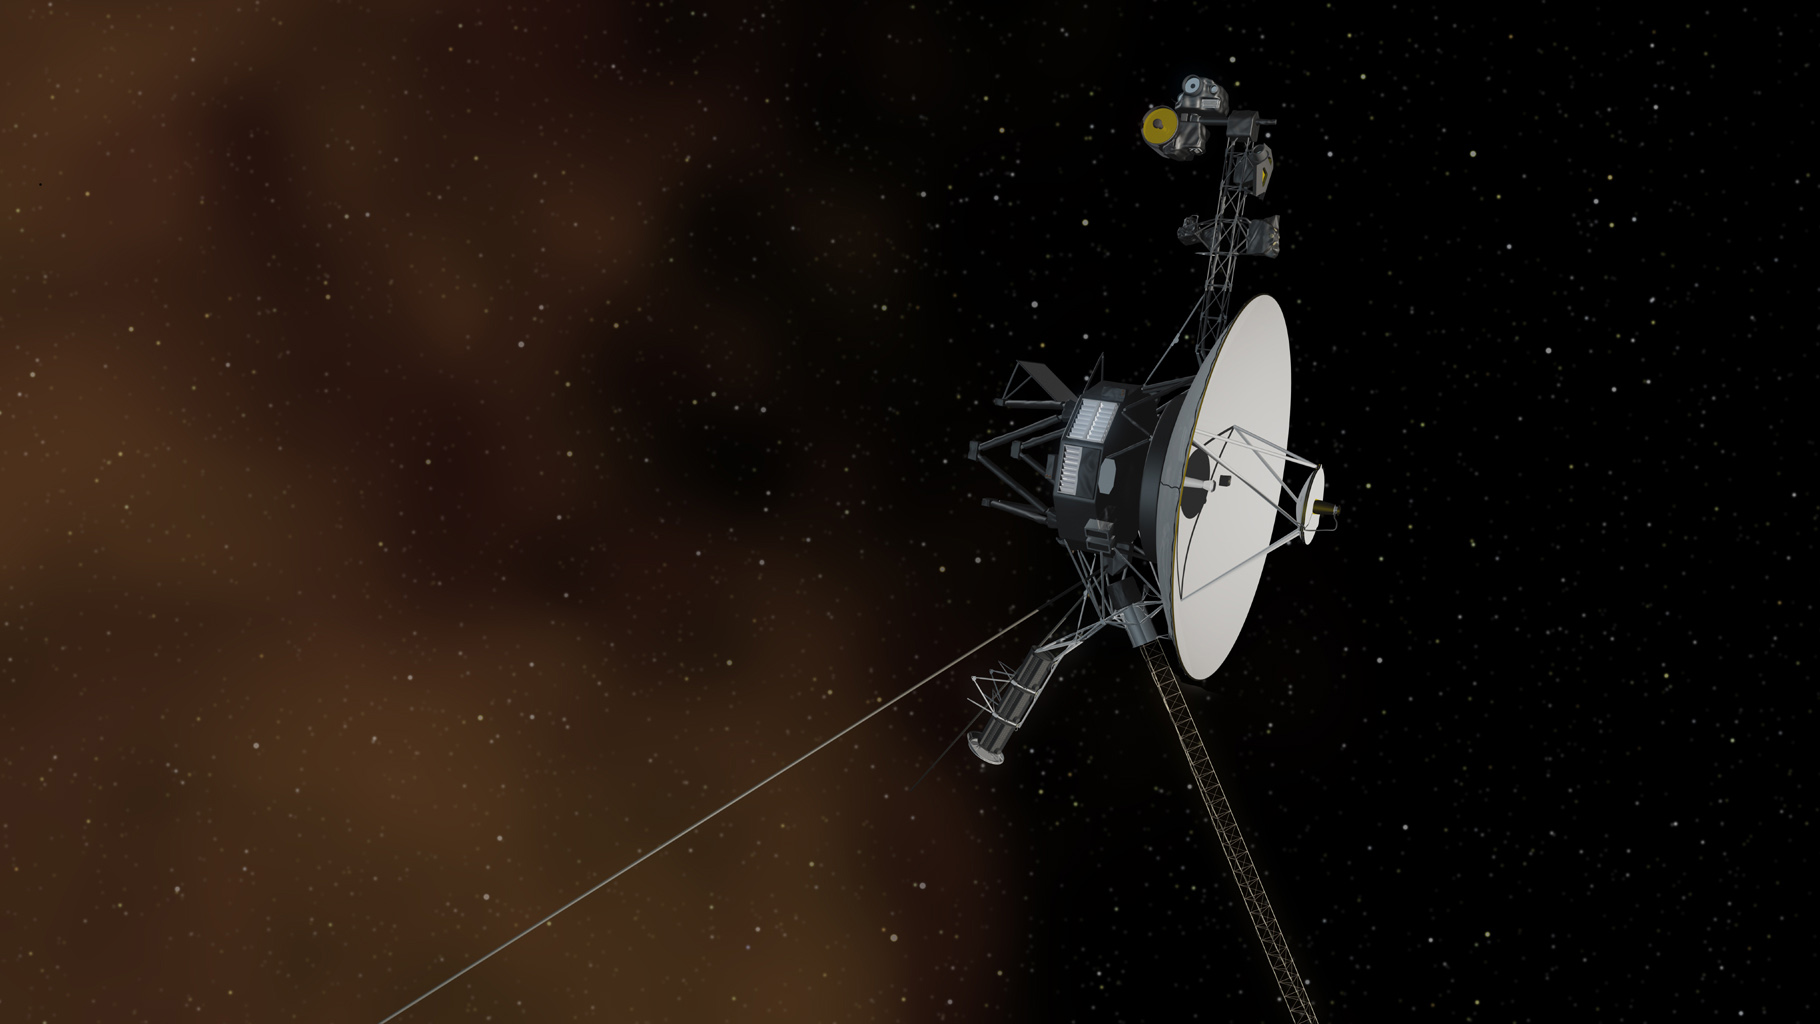 Voyager 1 leaving interstellar space